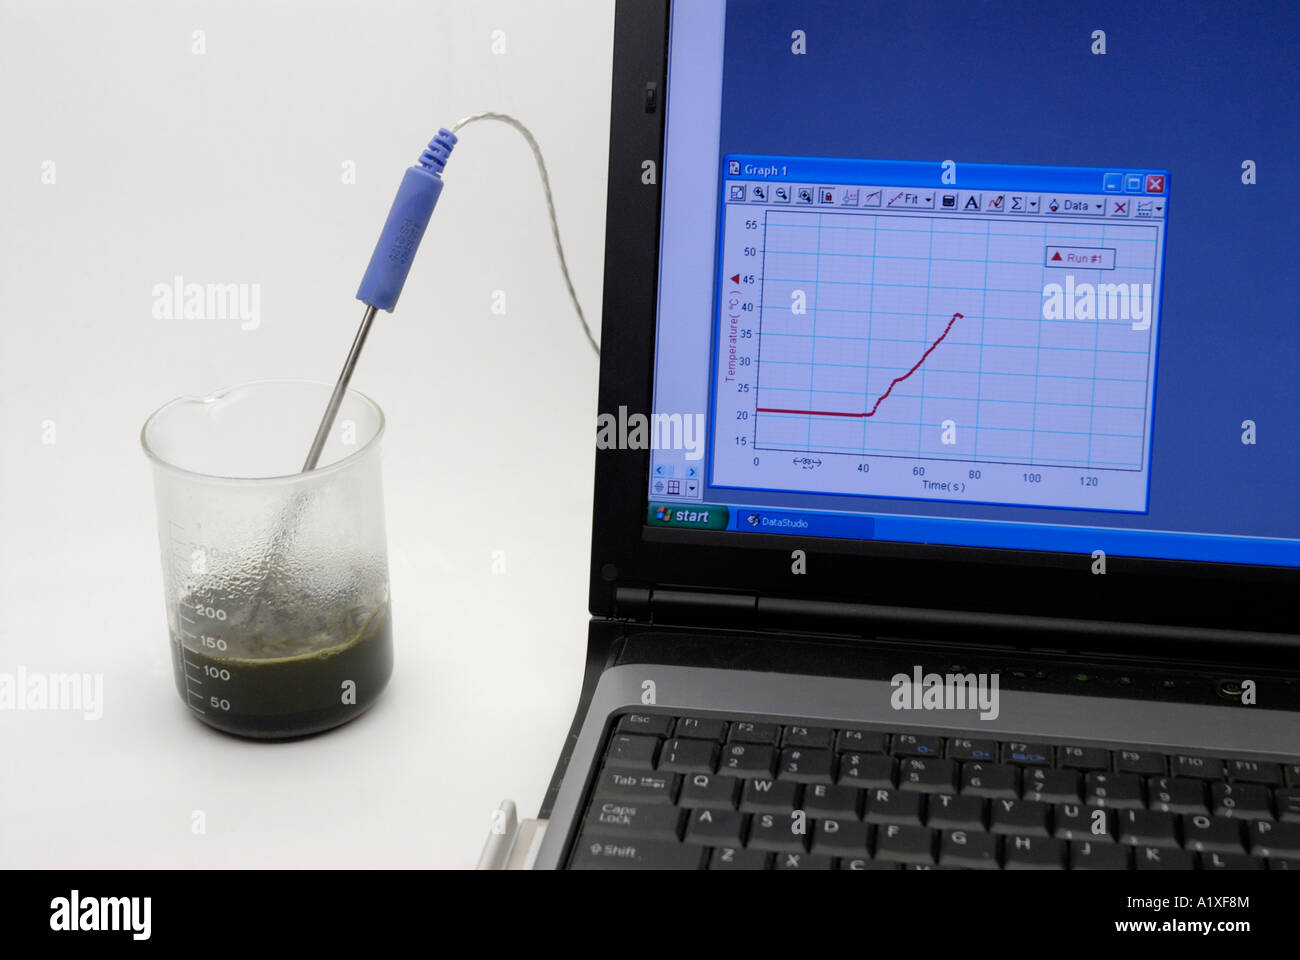 Digital sensor measuring heat release in exothermic exergonic chemical reaction - Stock Image